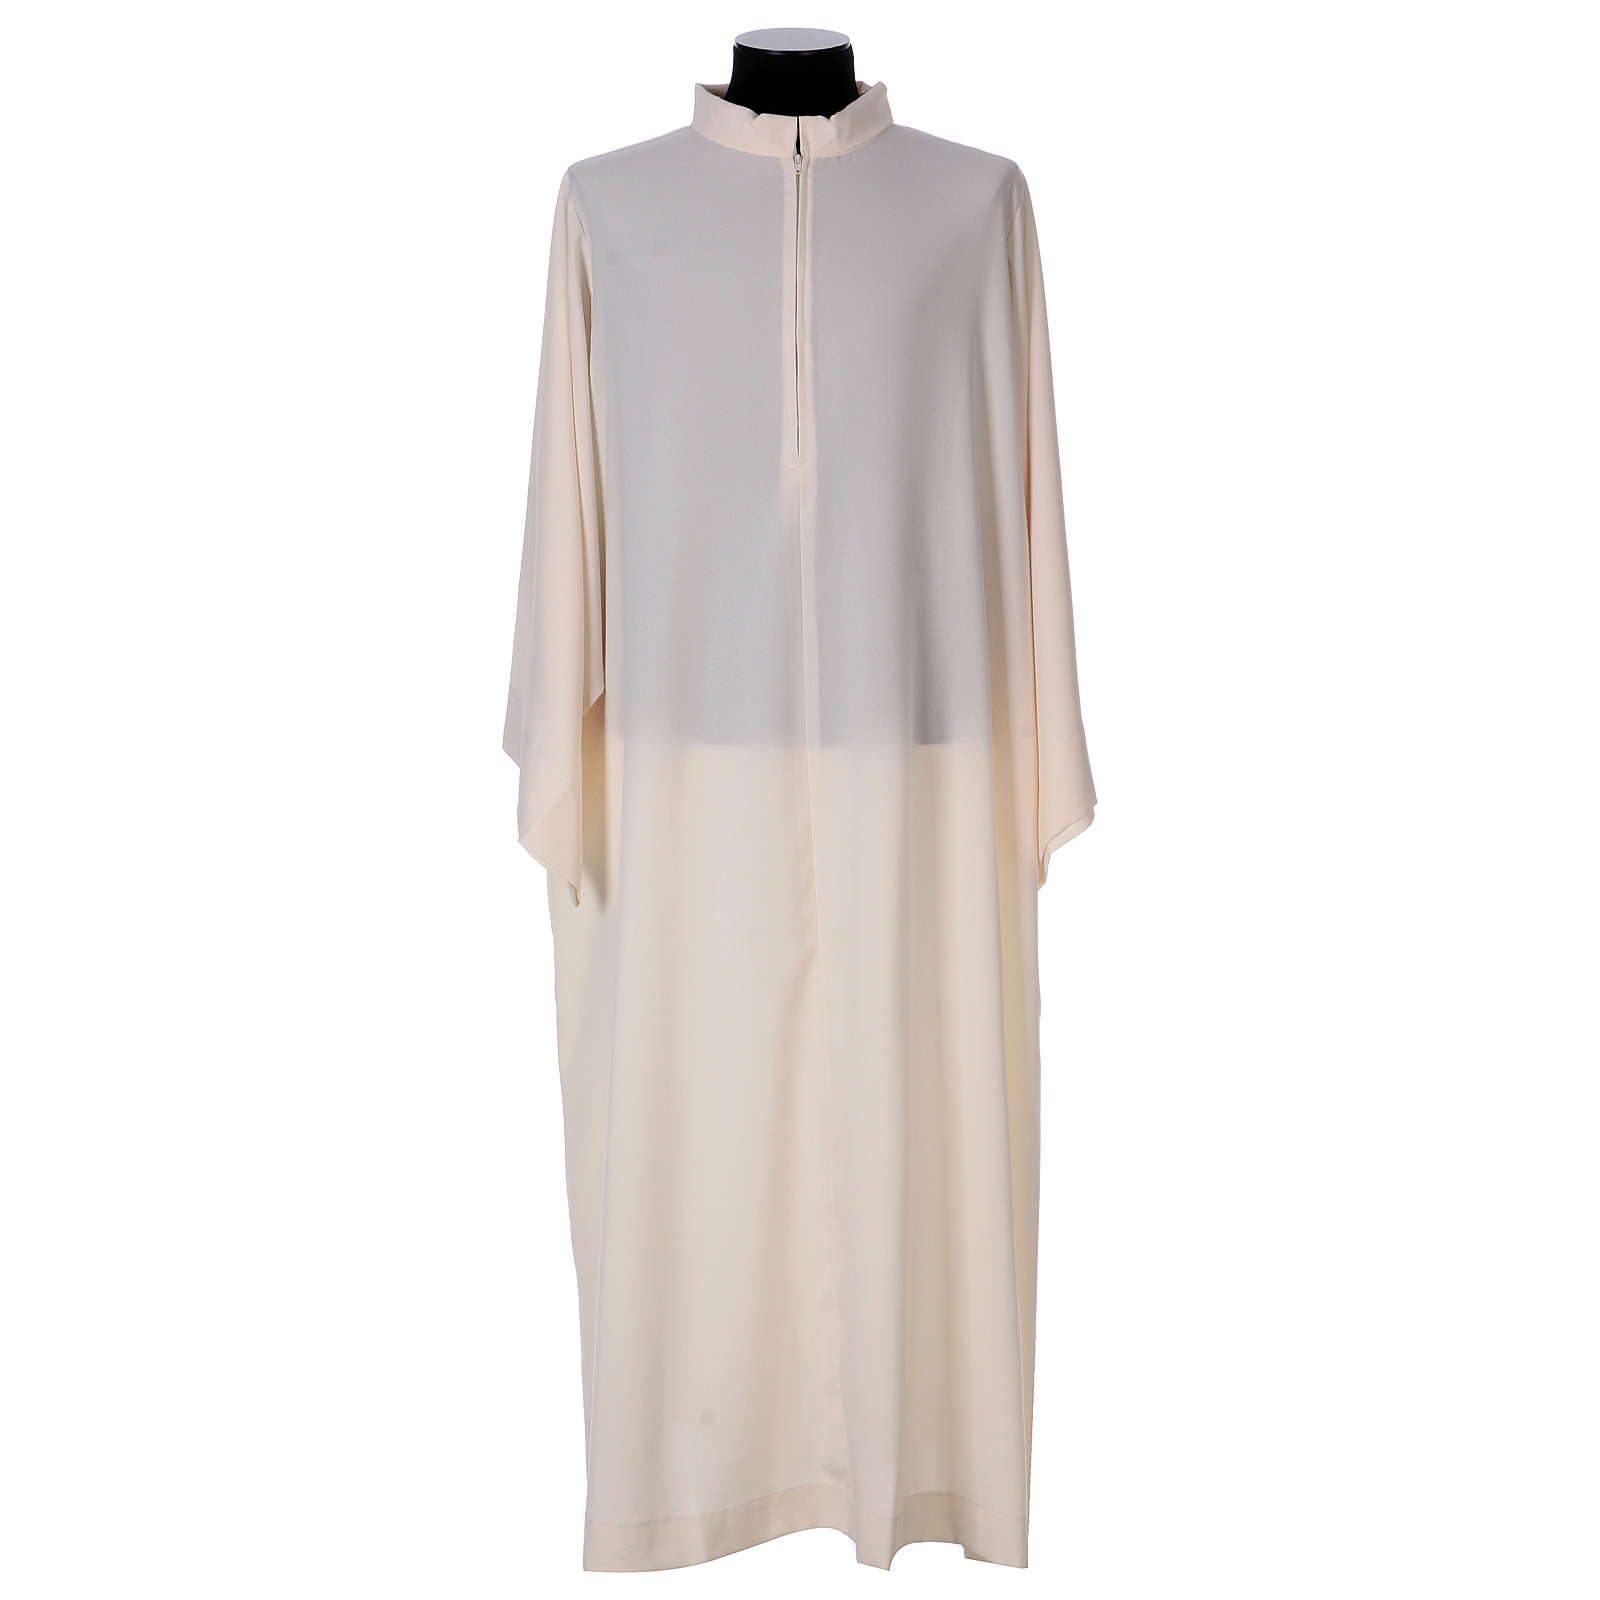 Surplice with turned up neck, flared, ivory colour light model 4